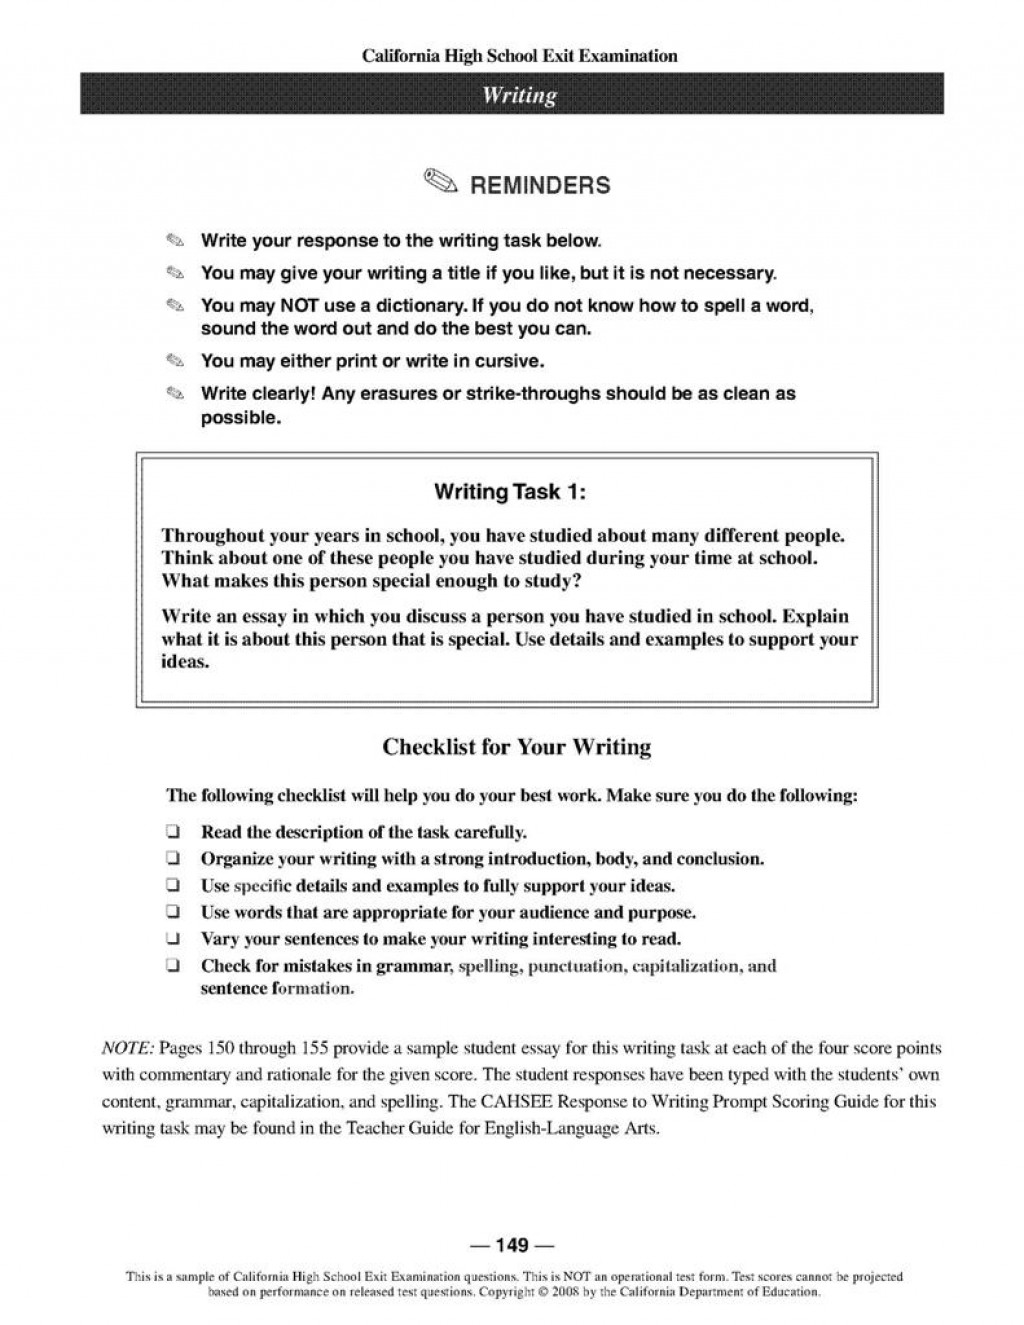 002 Essay Prompt Person Studied Custom Fascinating Writing Examples Generator Romance For 5th Grade Large